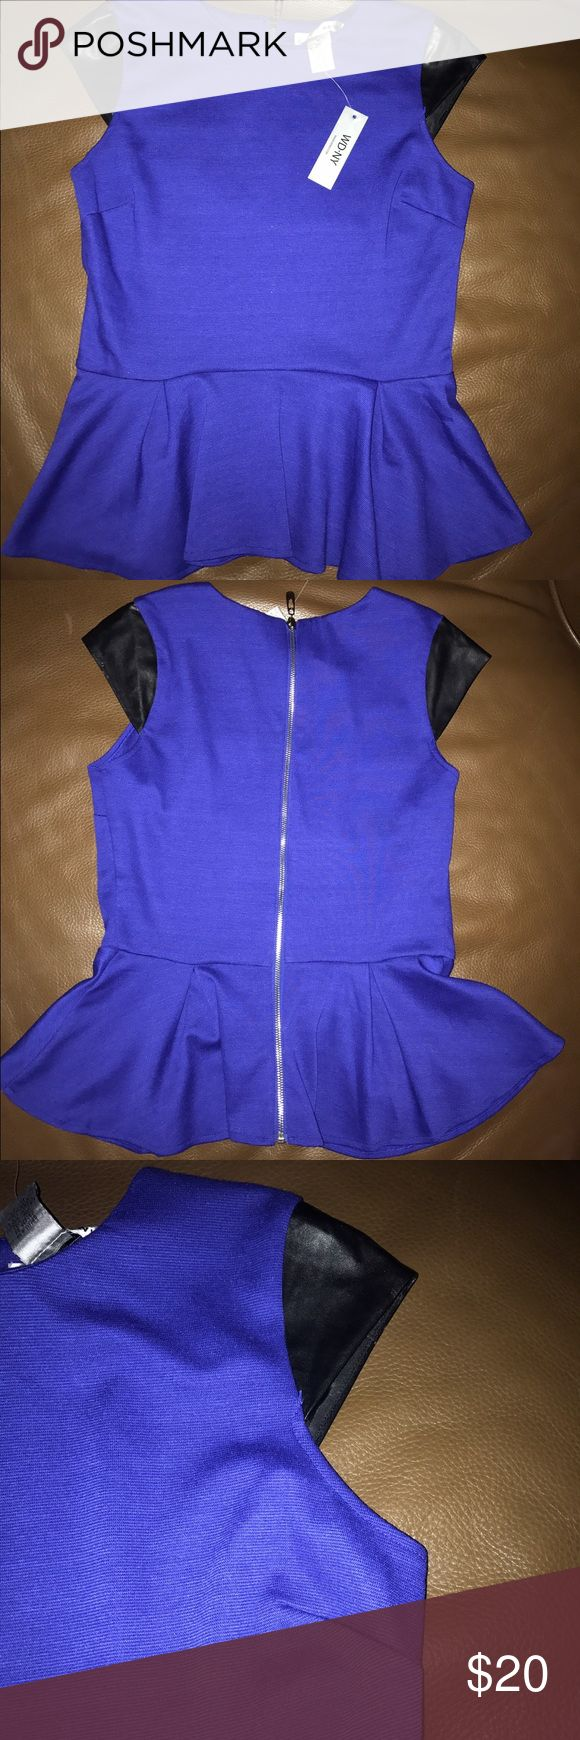 """👚NWT  WD.NY Blue Peplum Top Black Faux Leather Very cute peplum cap sleeve top with full length silver back zipper. """"New"""". Machine wash/dry 95% polyester, 5% spandex. sleeve 100% faux leather WD. NY Tops"""